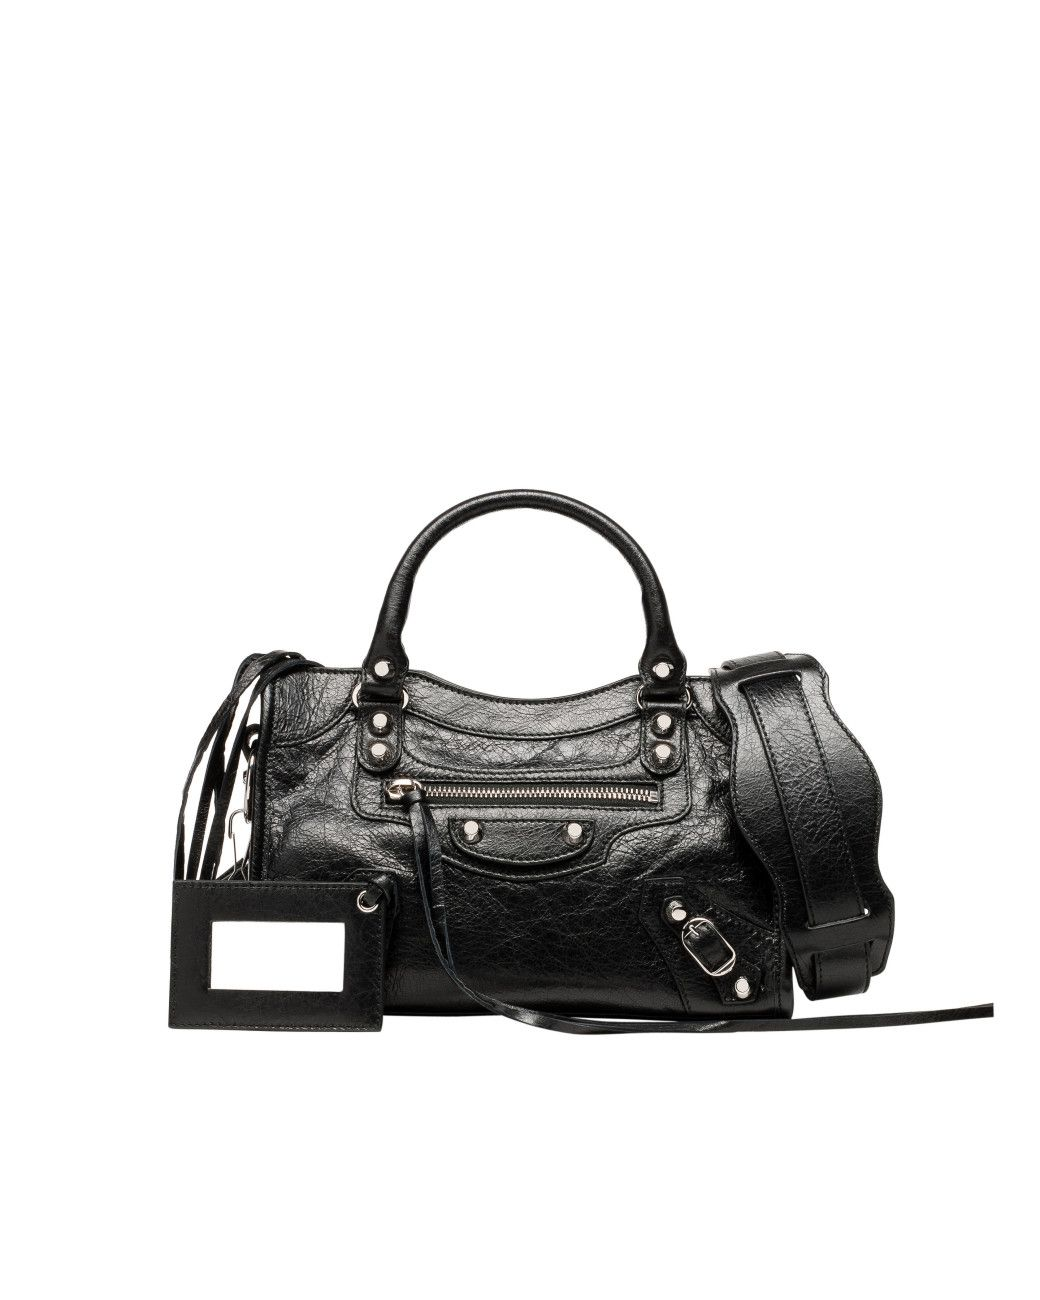 74e42783aca1 Women s Black Mini City Leather Bag